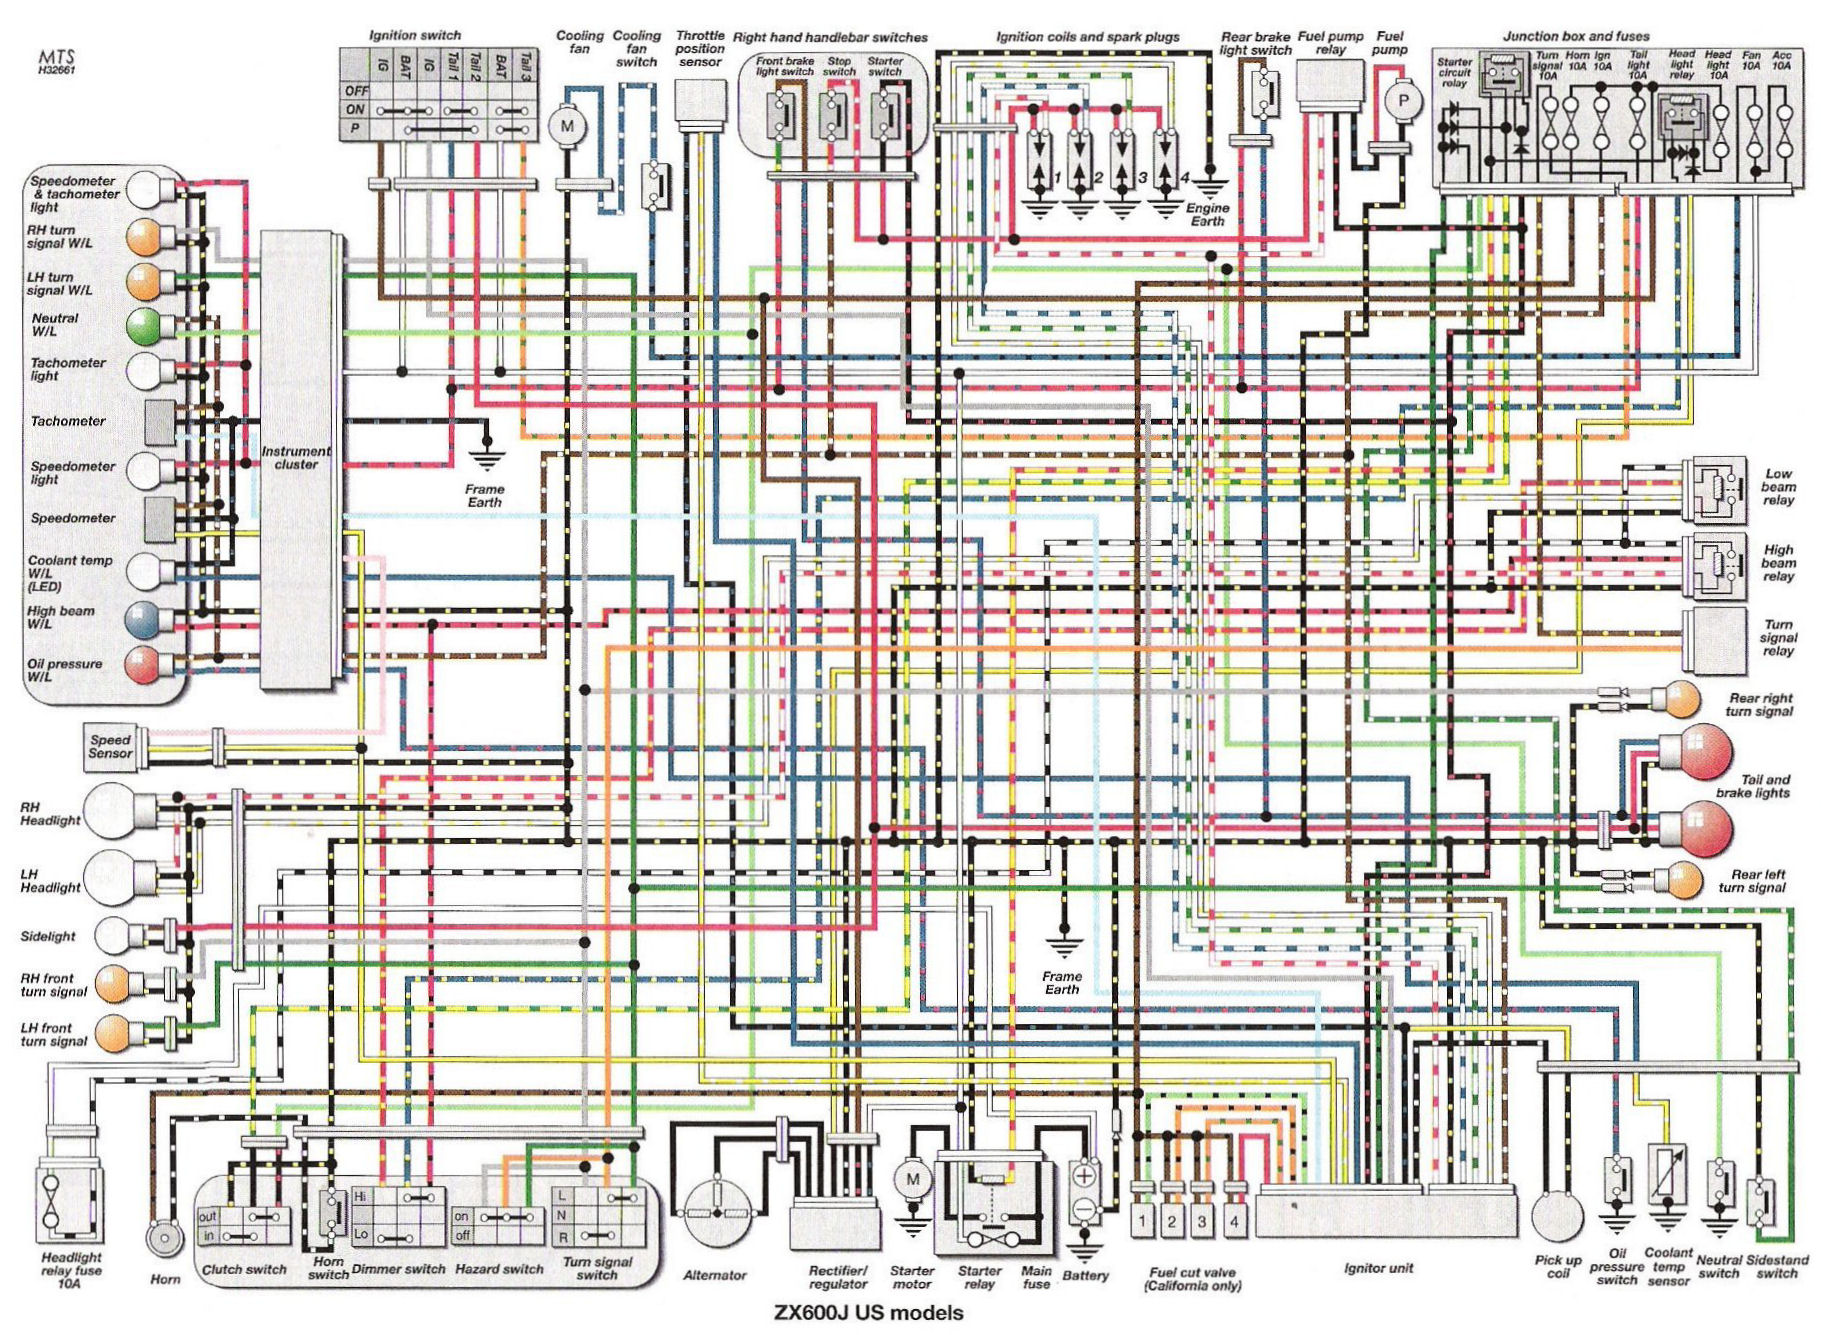 zx600j_us?zoom\=2.625\&resize\=665%2C488 fzr 1000 exup wiring diagram triumph daytona 675 wiring diagram 2008 suzuki gsxr 600 wiring diagram at n-0.co